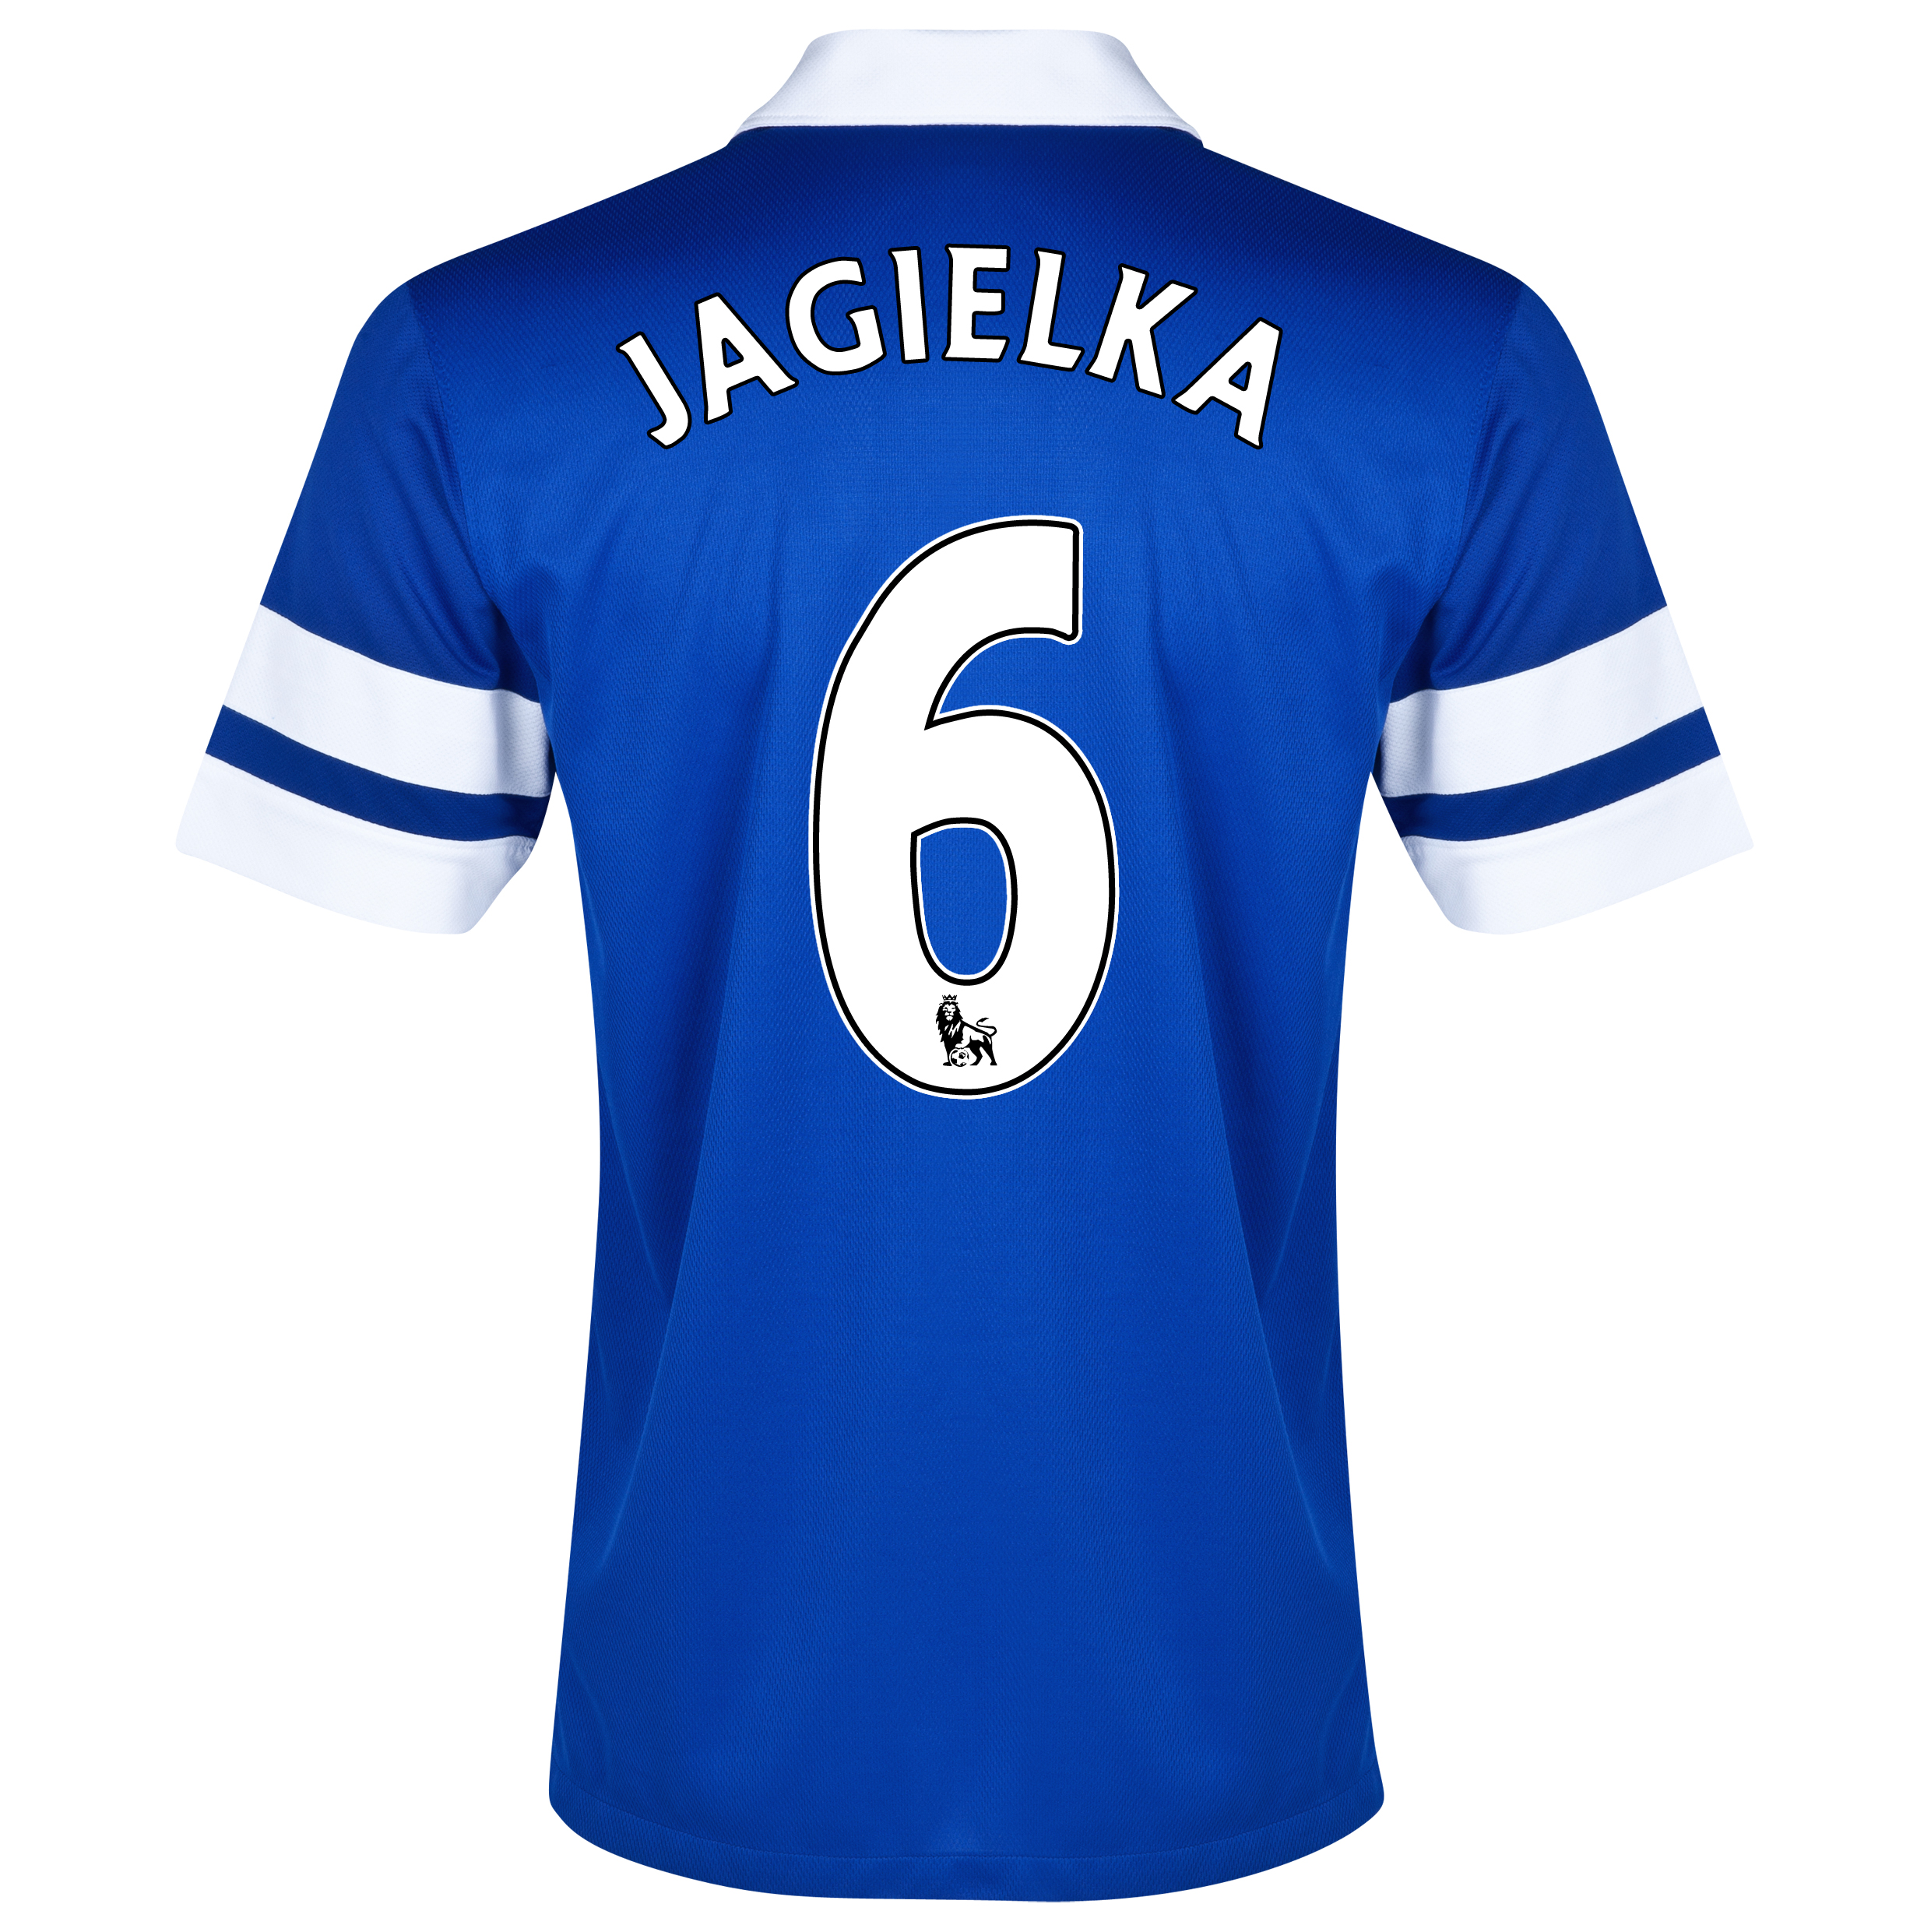 Everton Home Shirt 2013/14 Blue with Jagielka 6 printing